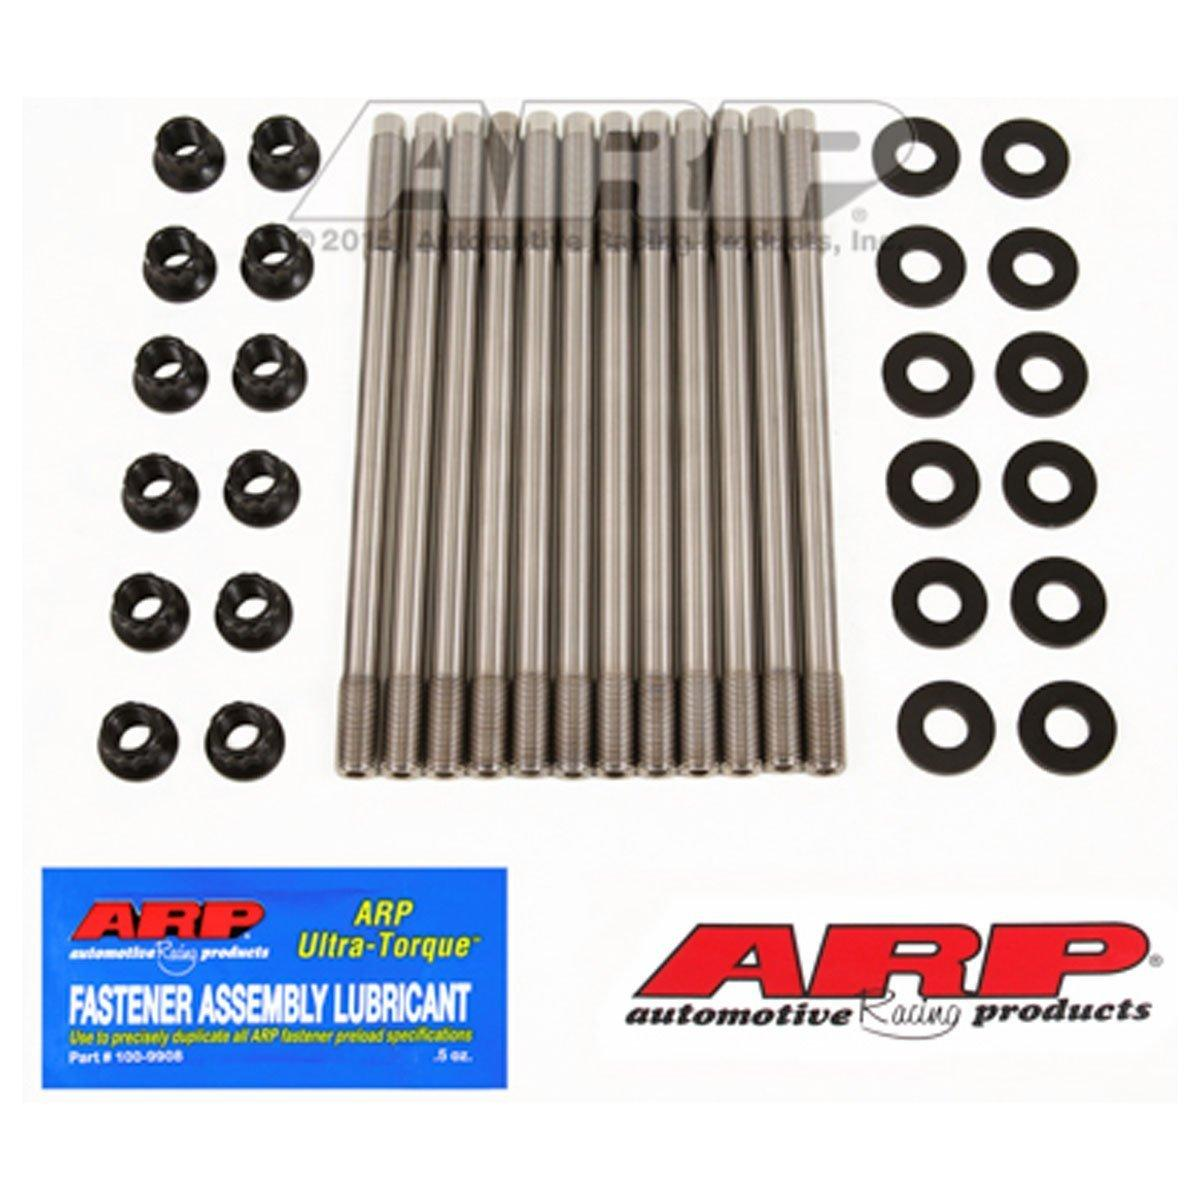 ARP Head Studs for Subaru EJ20/EJ25 DOHC 625+